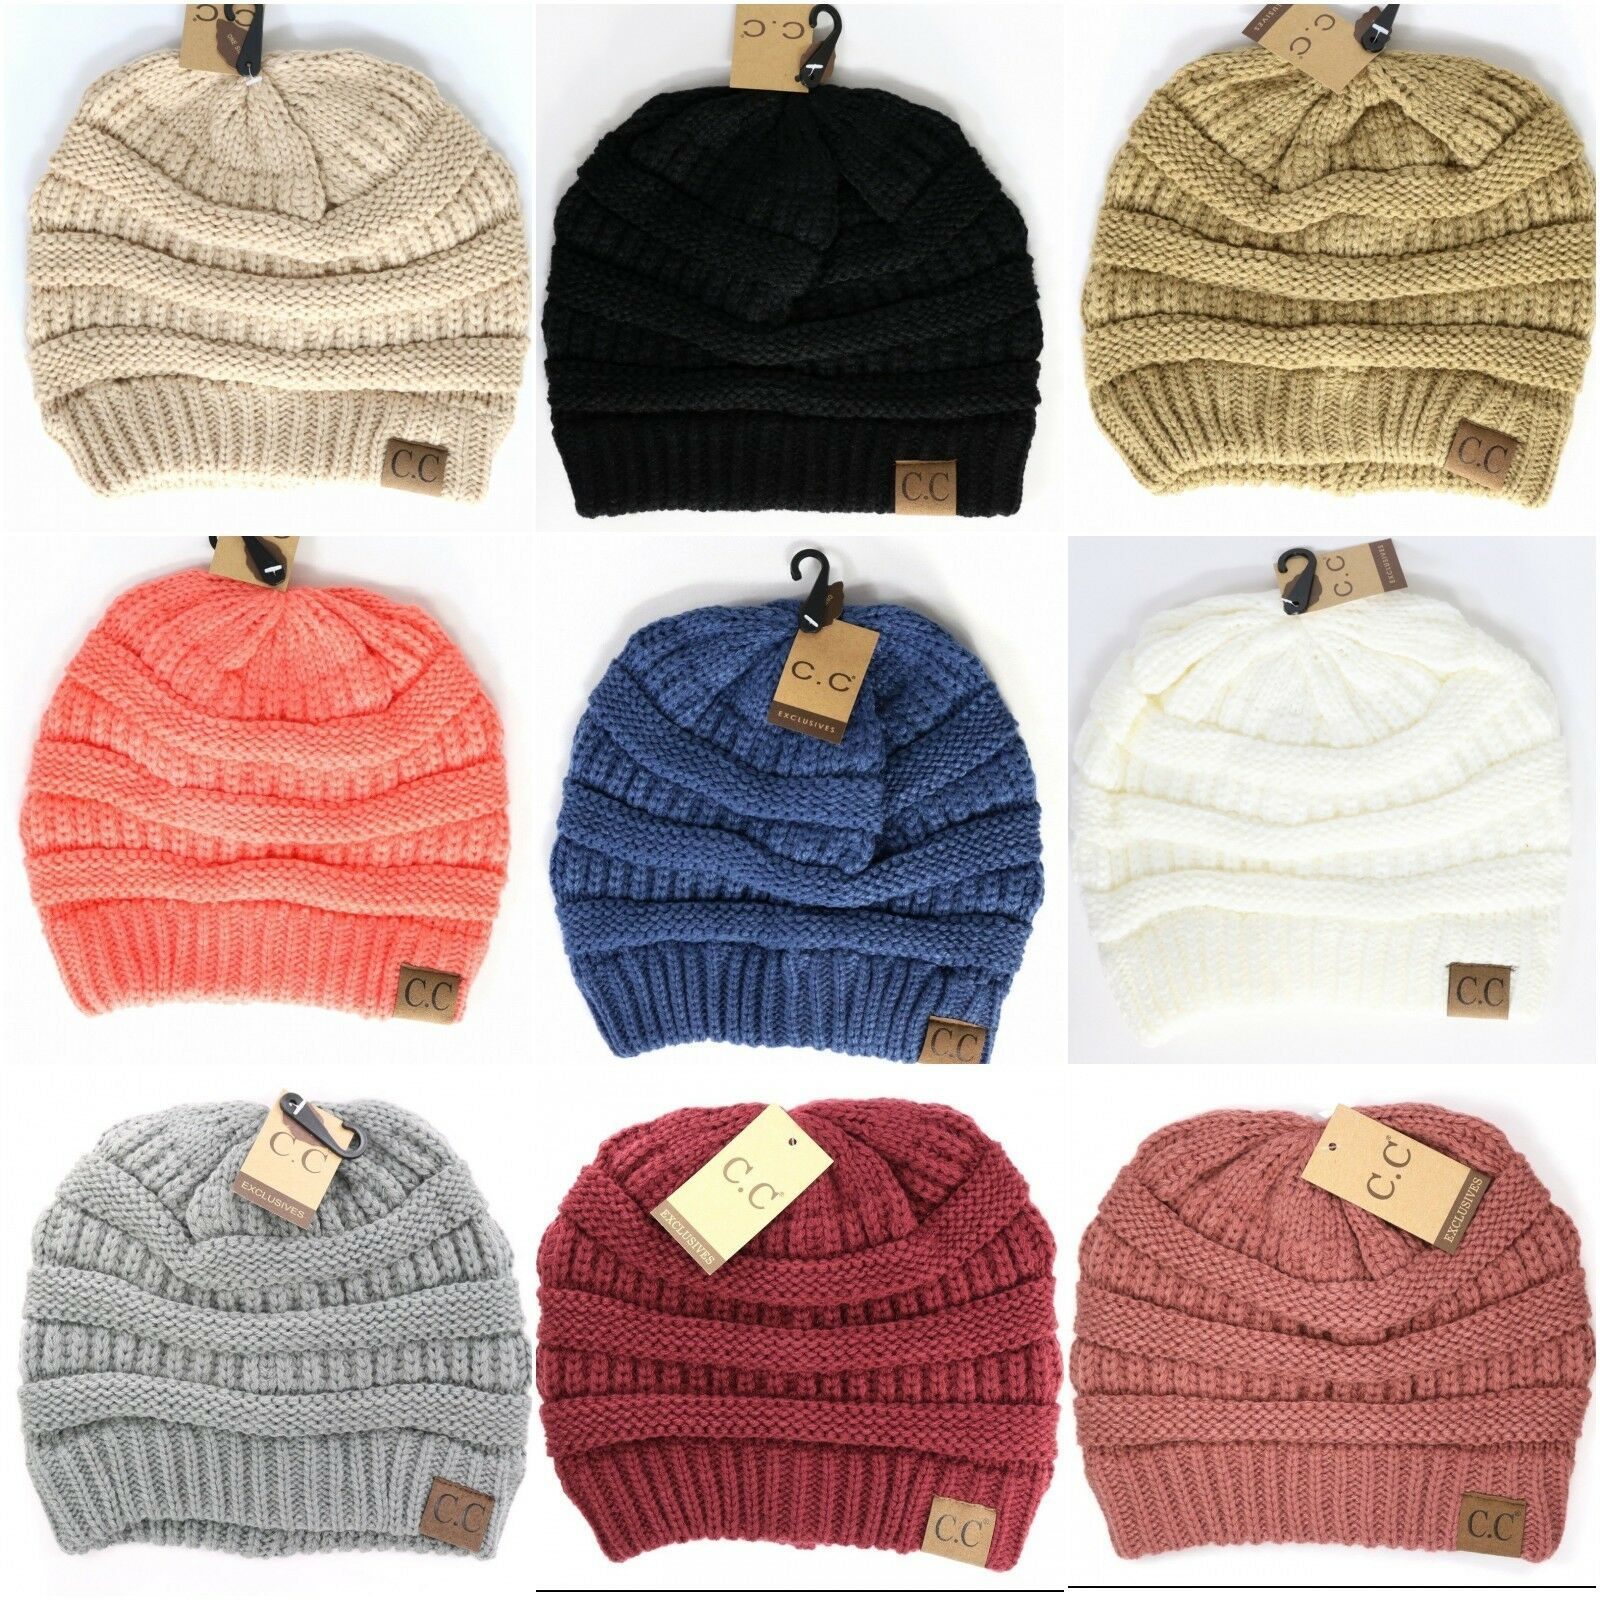 Primary image for CC Beanie Classic Solid or Confetti Beanie Hat